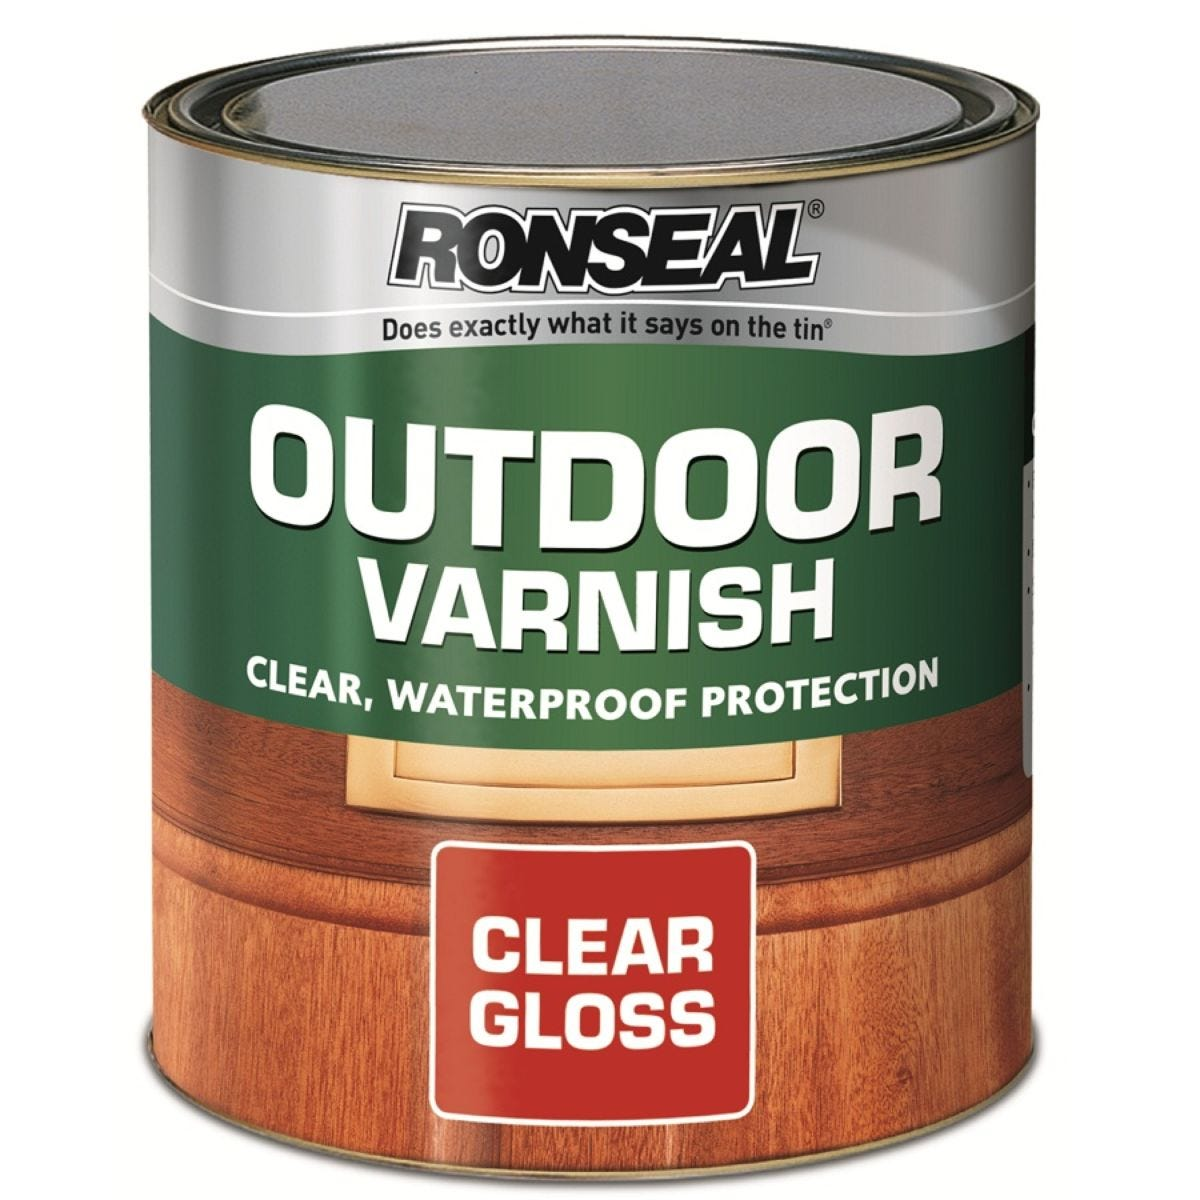 Ronseal Outdoor Varnish – Clear Gloss, 750ml